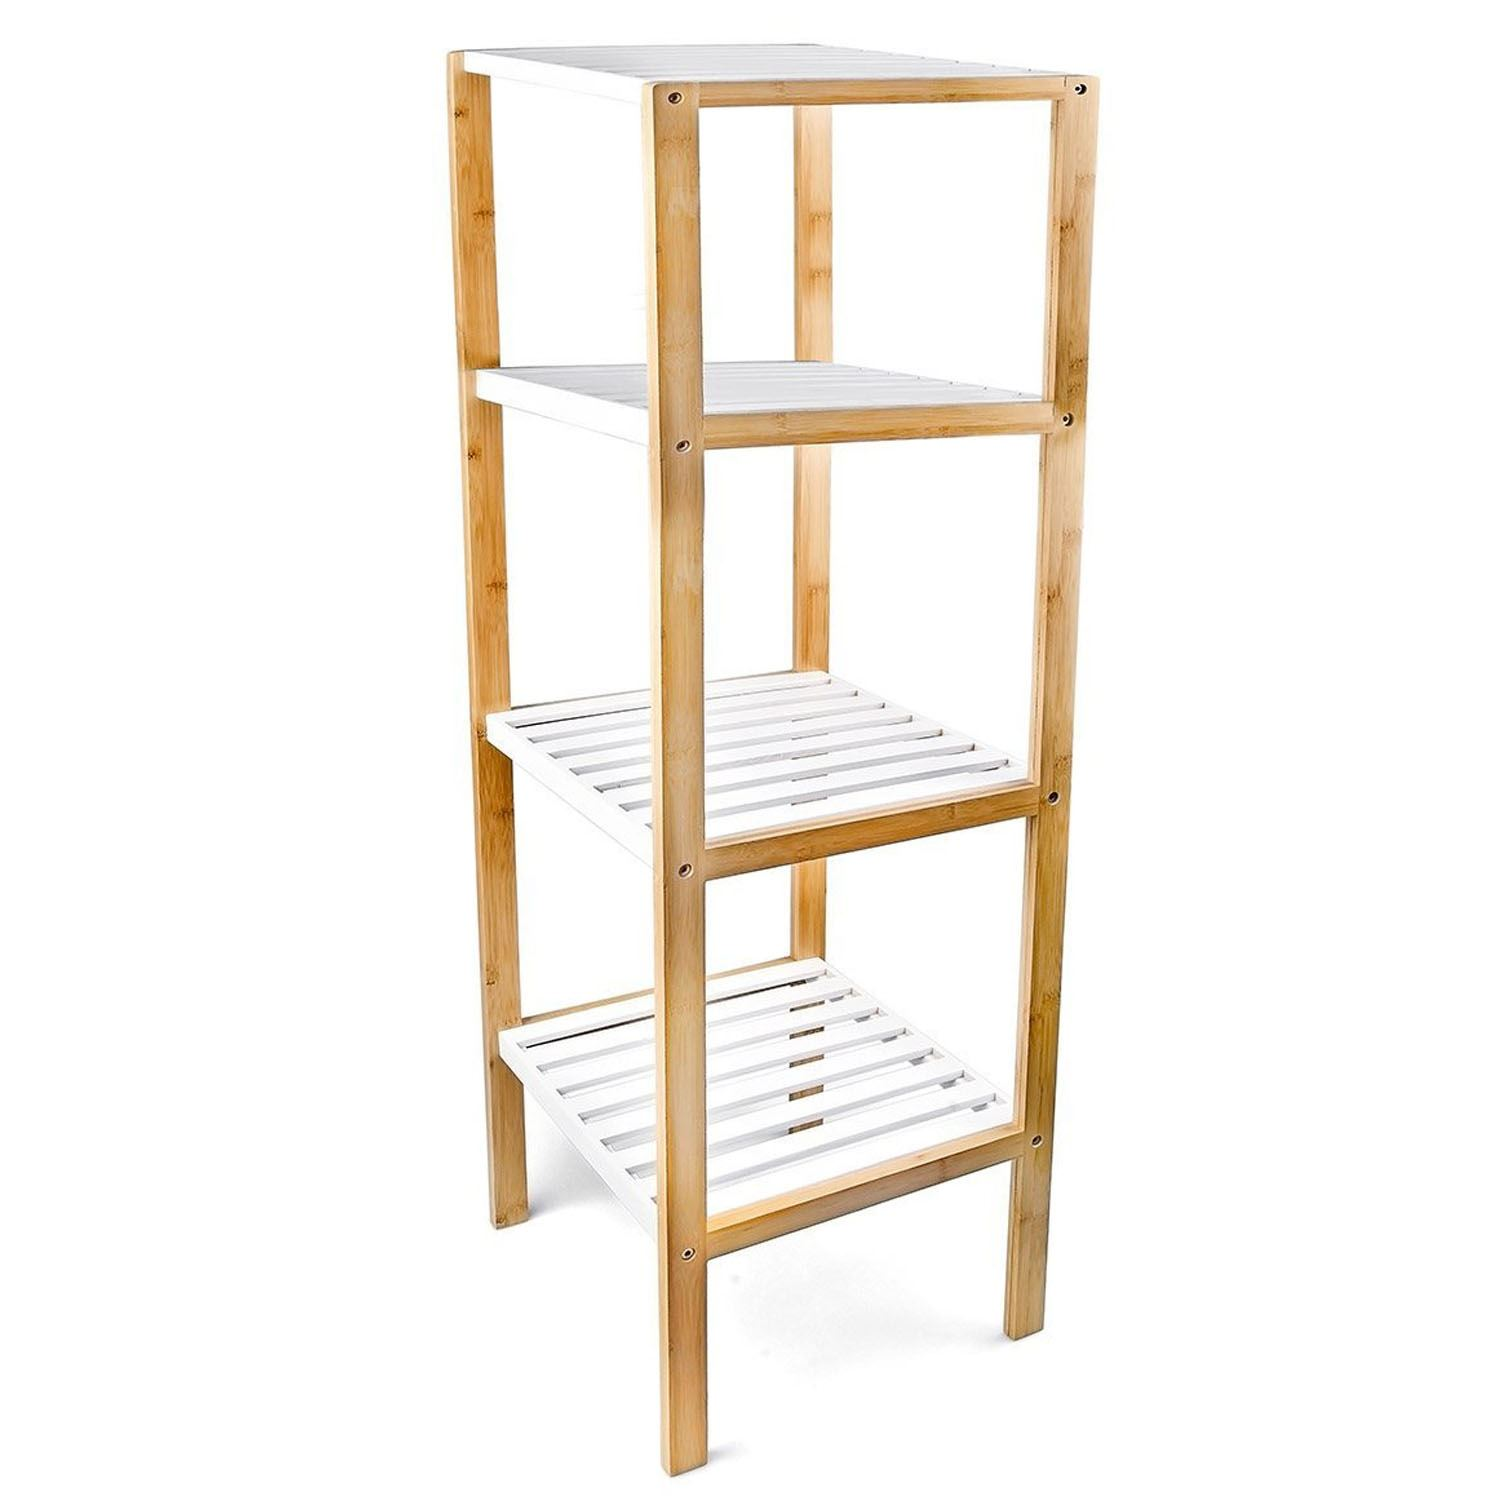 Excellent Bamboo Bathroom Corner Tower With 5 Shelves In Cherry By Altra